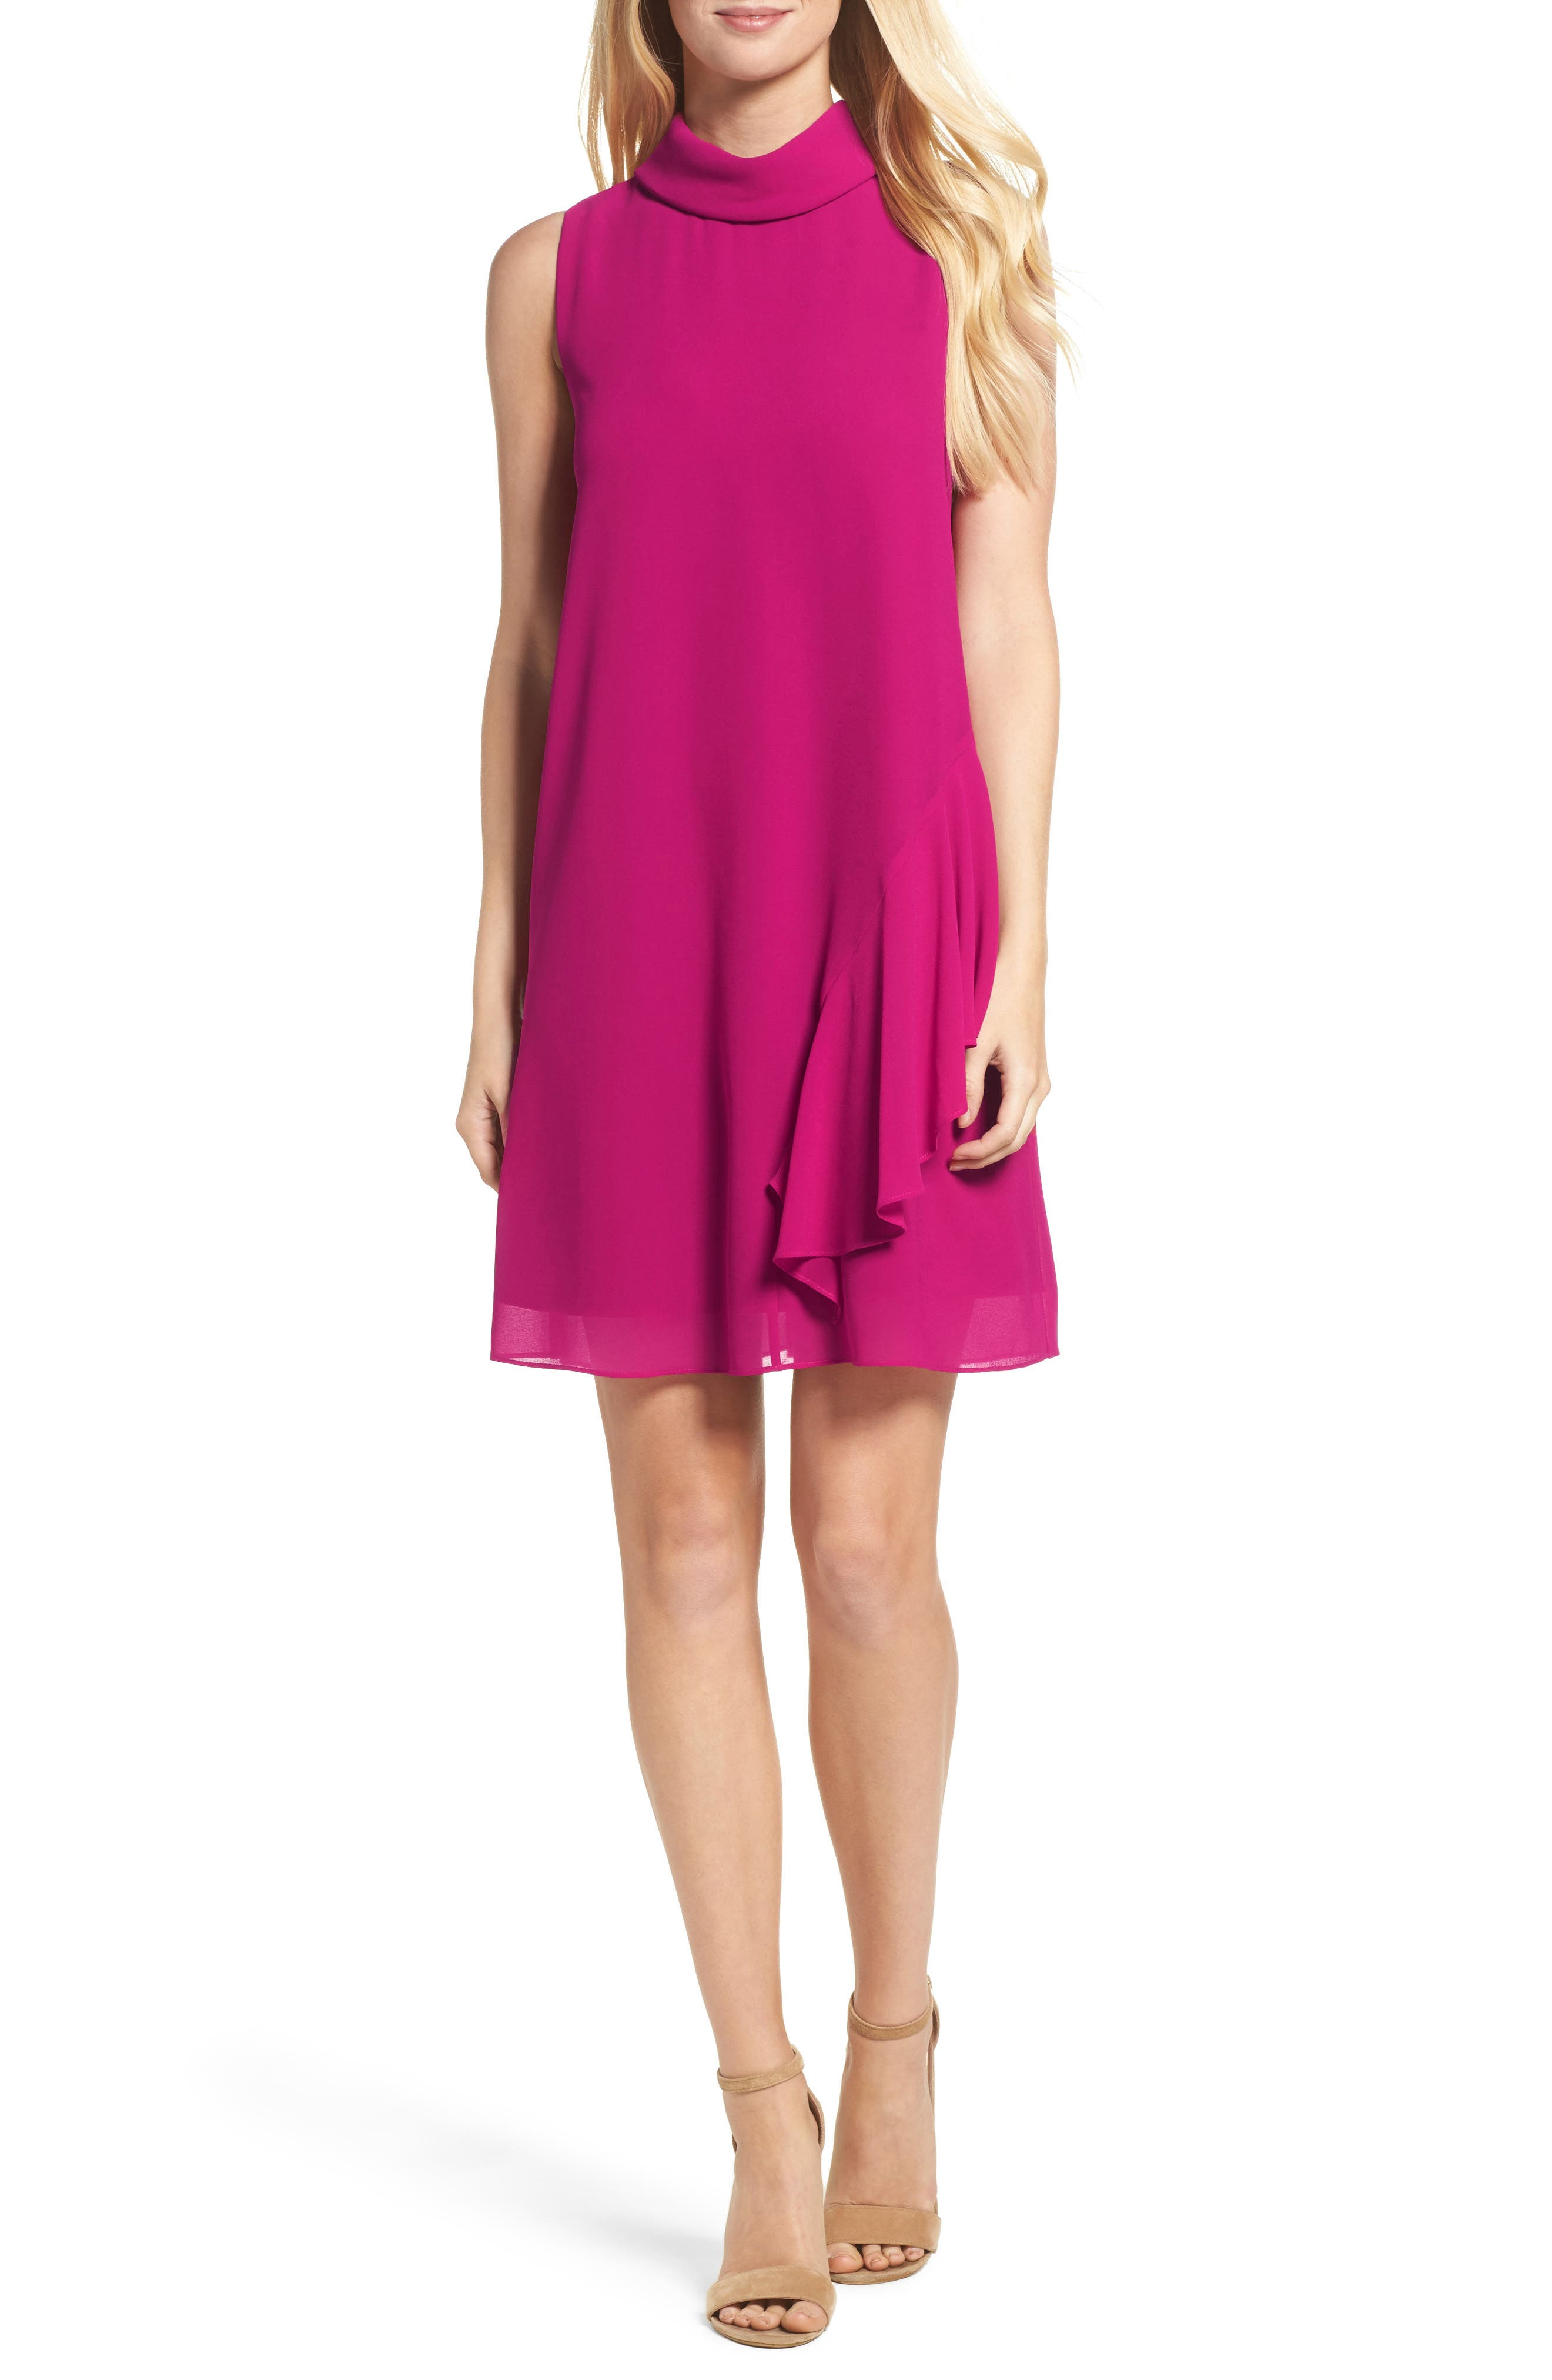 Alternate Image 1 Selected - Vince Camuto Roll Neck Chiffon Dress